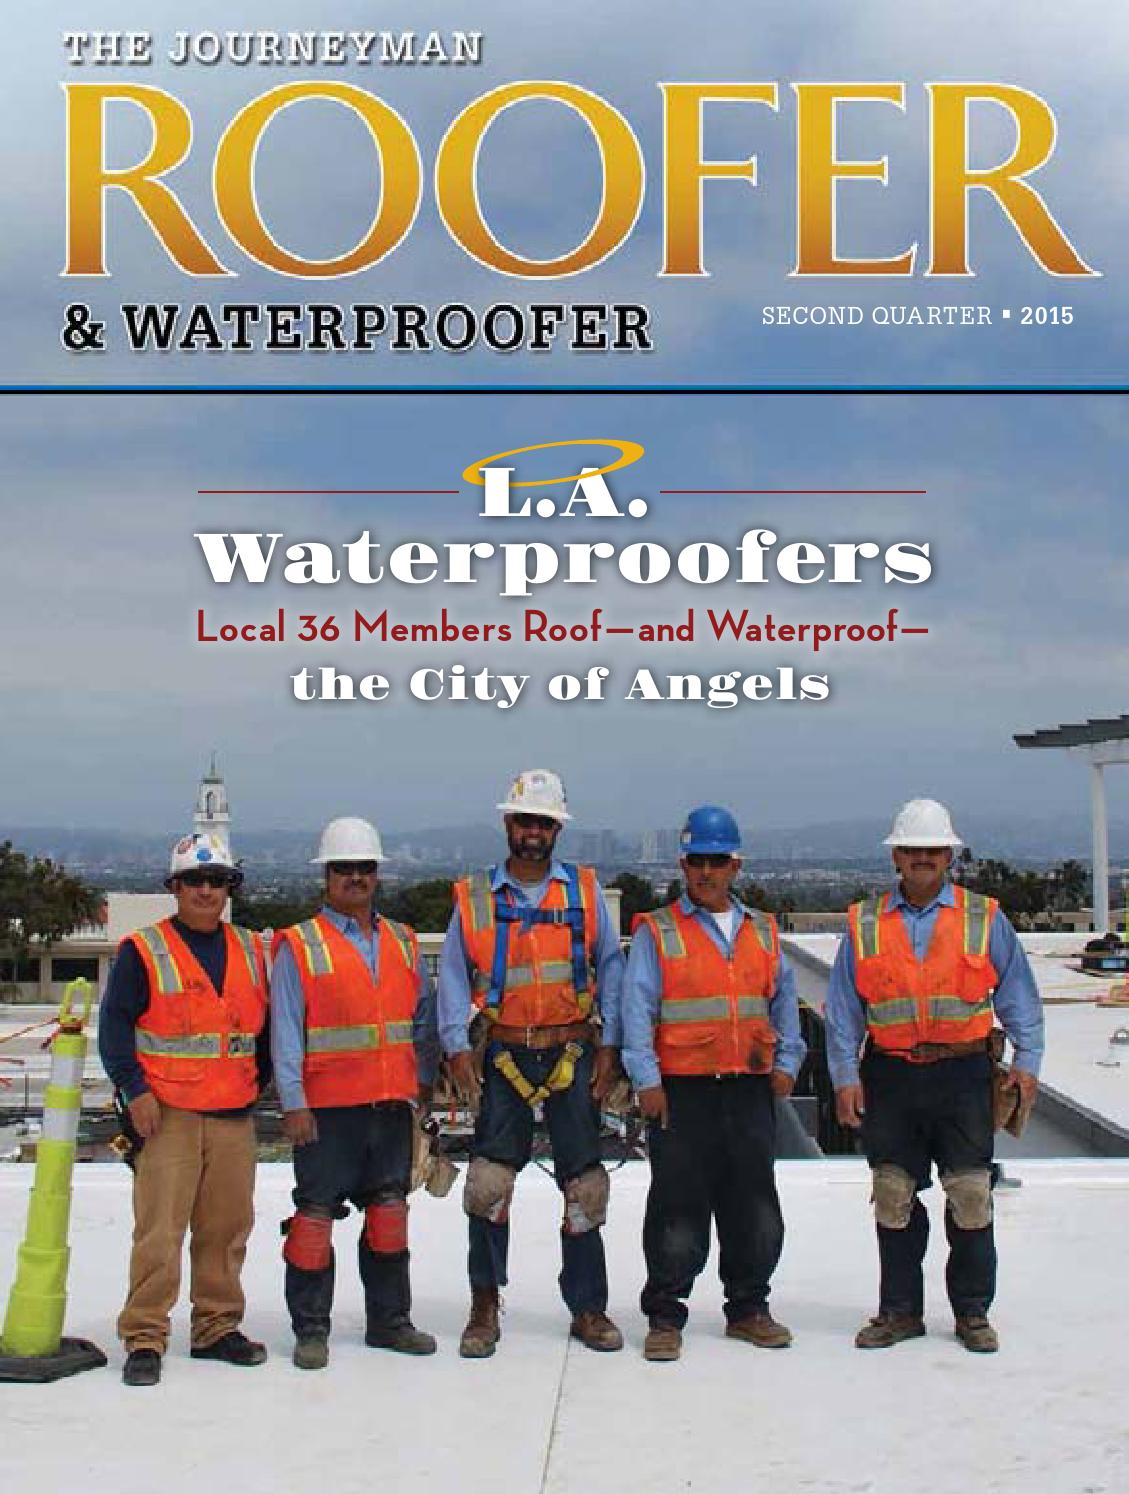 The harold j becker company the moisture protection contractors you - The Journeyman Roofer Waterproofer 2nd Qtr 2015 By Roofersunion Issuu